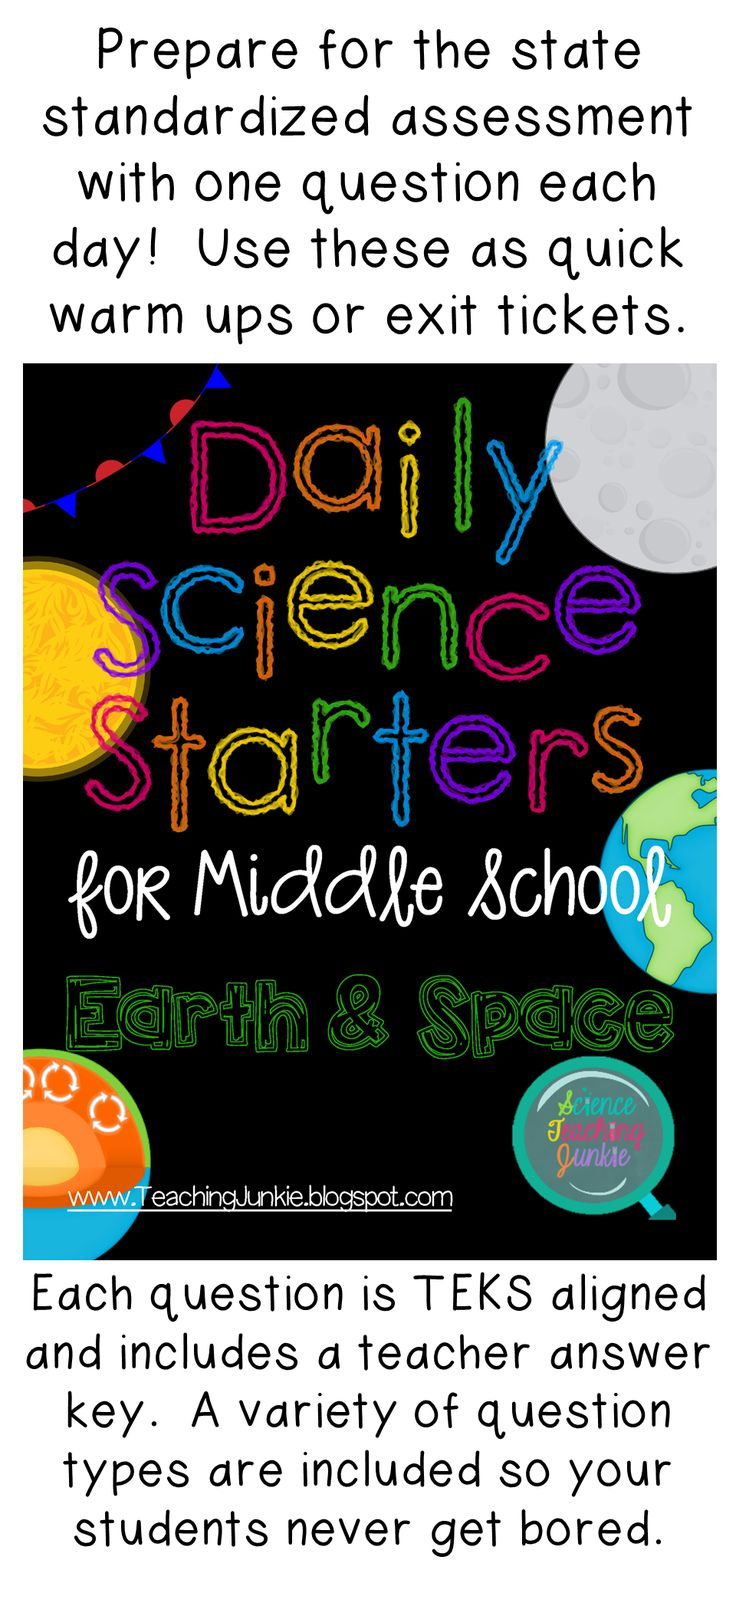 Best 20+ Science Daily ideas on Pinterest | Recent science ...